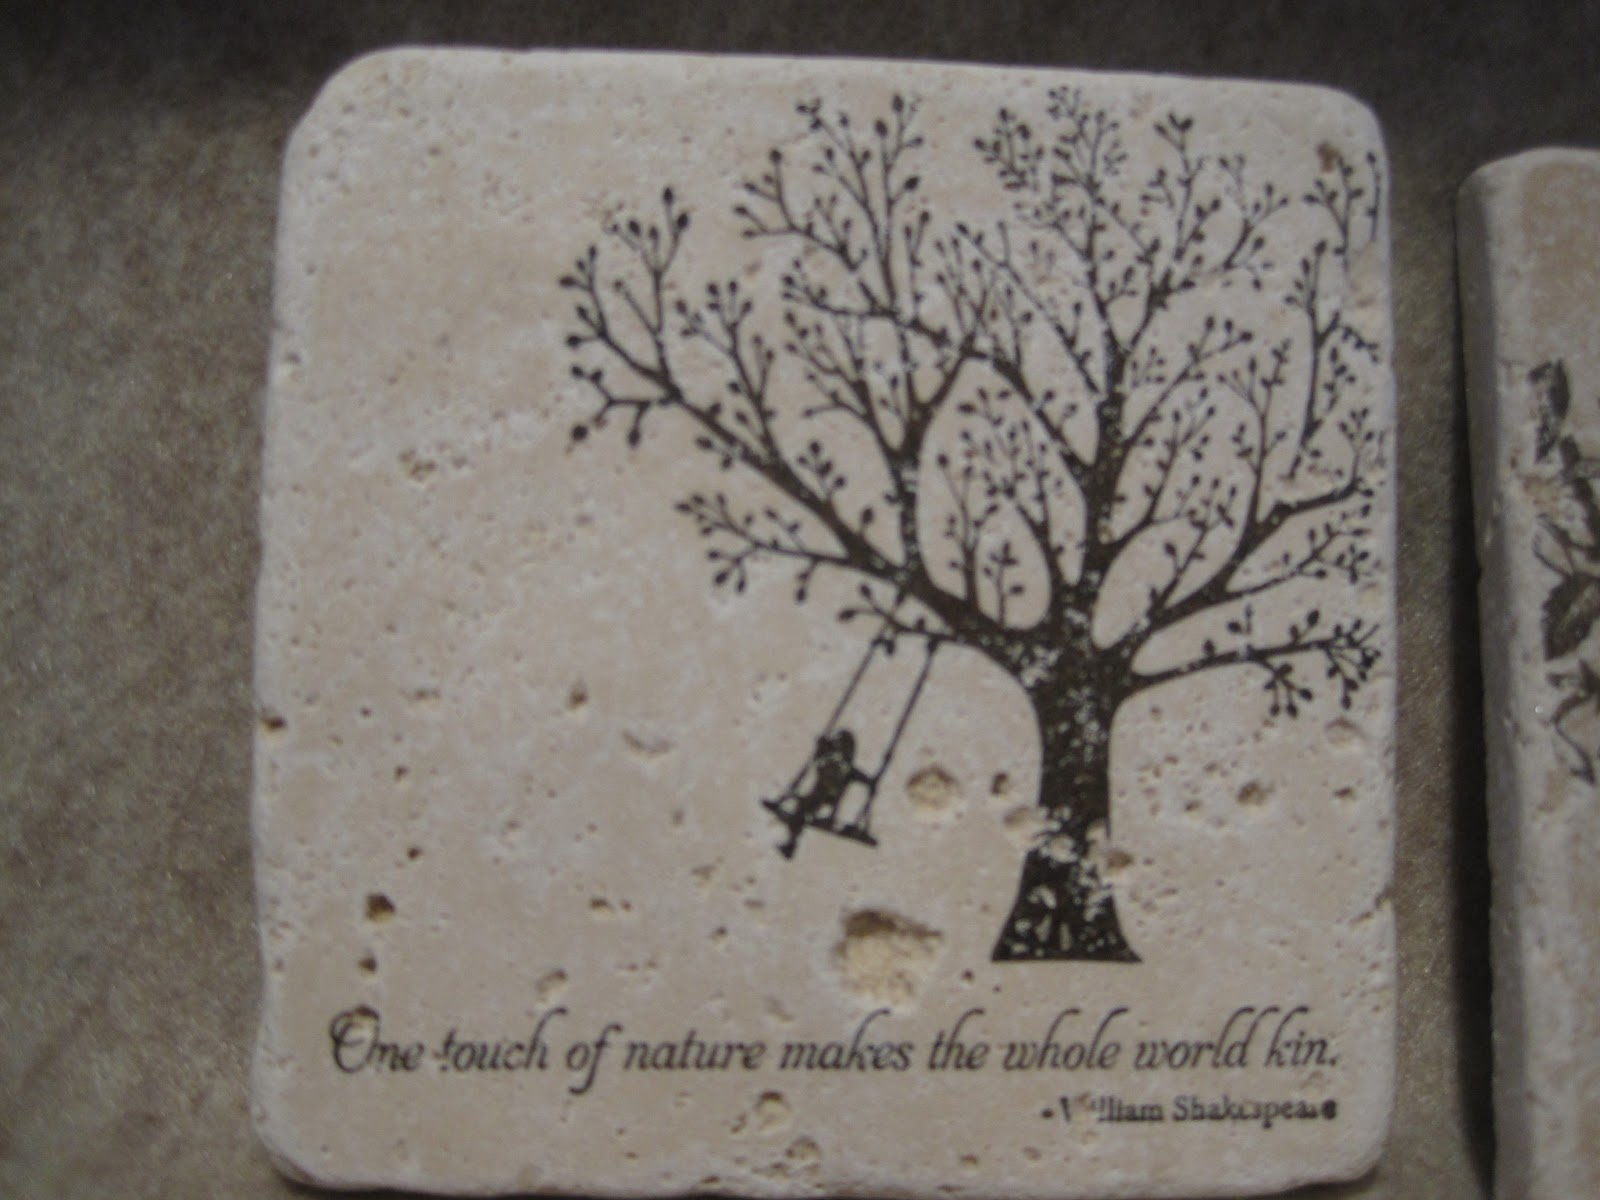 Sunday view travertine tile coaster tutorial stamp images with fewer details fewer lines and more solid areas on the rougher tiles dailygadgetfo Images